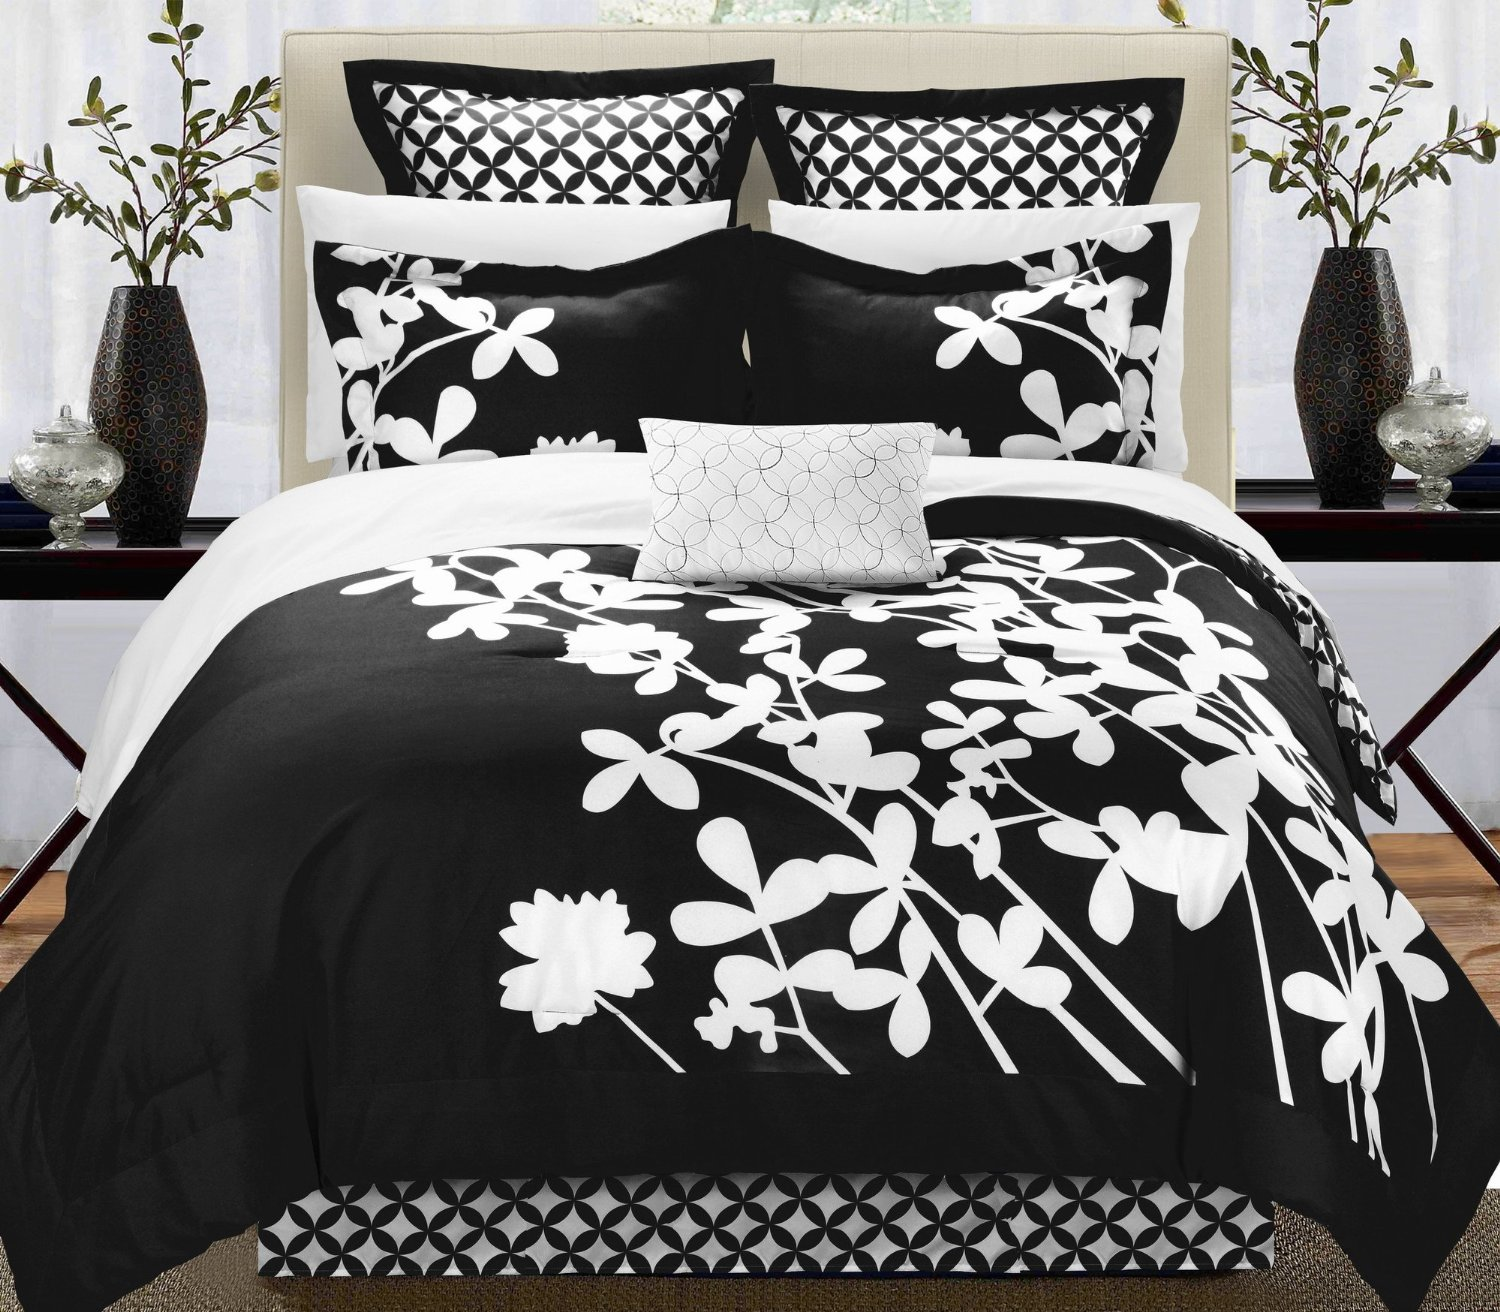 Cheap black and white floral comforter find black and white floral get quotations 7 piece comforter set in modern floral design reversible king size black white mightylinksfo